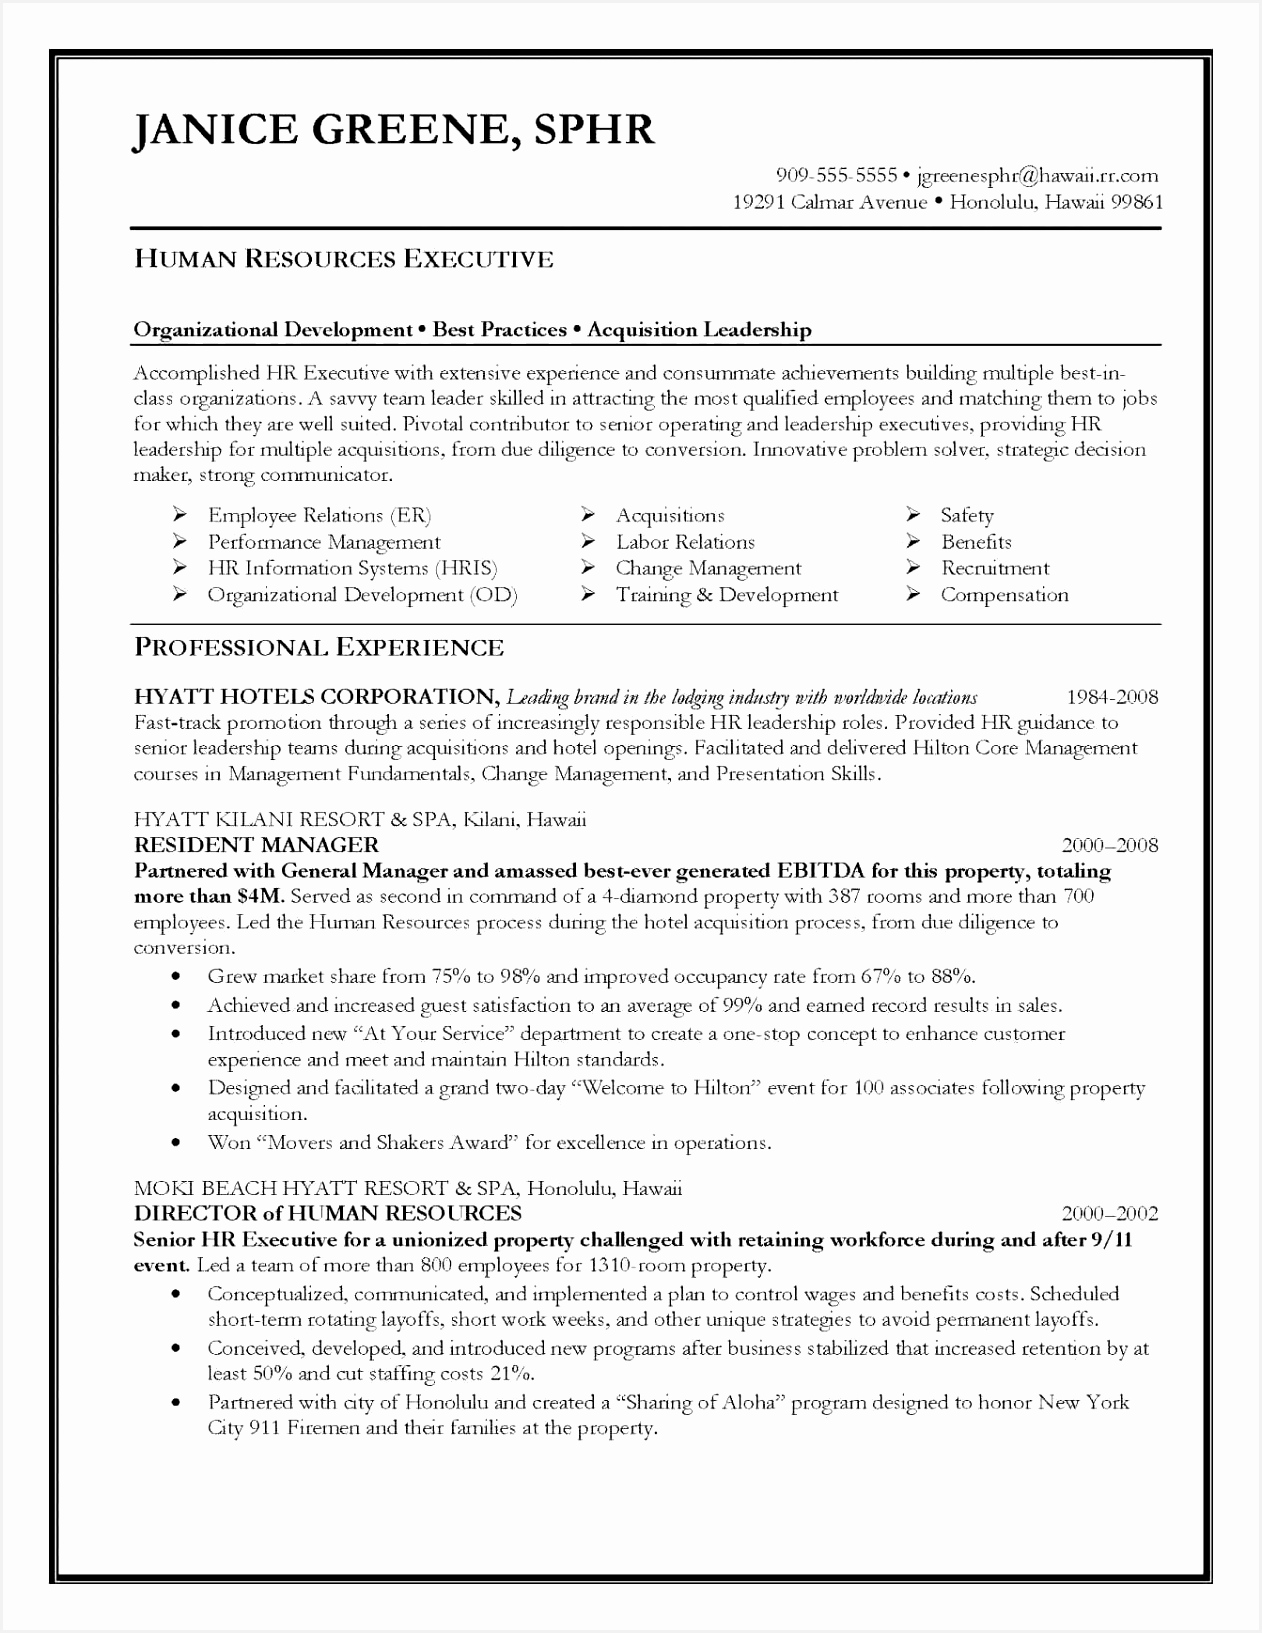 Mining Safety Manager Sample Resume Etkcg New Fast Food Resume Examples Elegant New It Manager Resume Examples Of 5 Mining Safety Manager Sample Resume